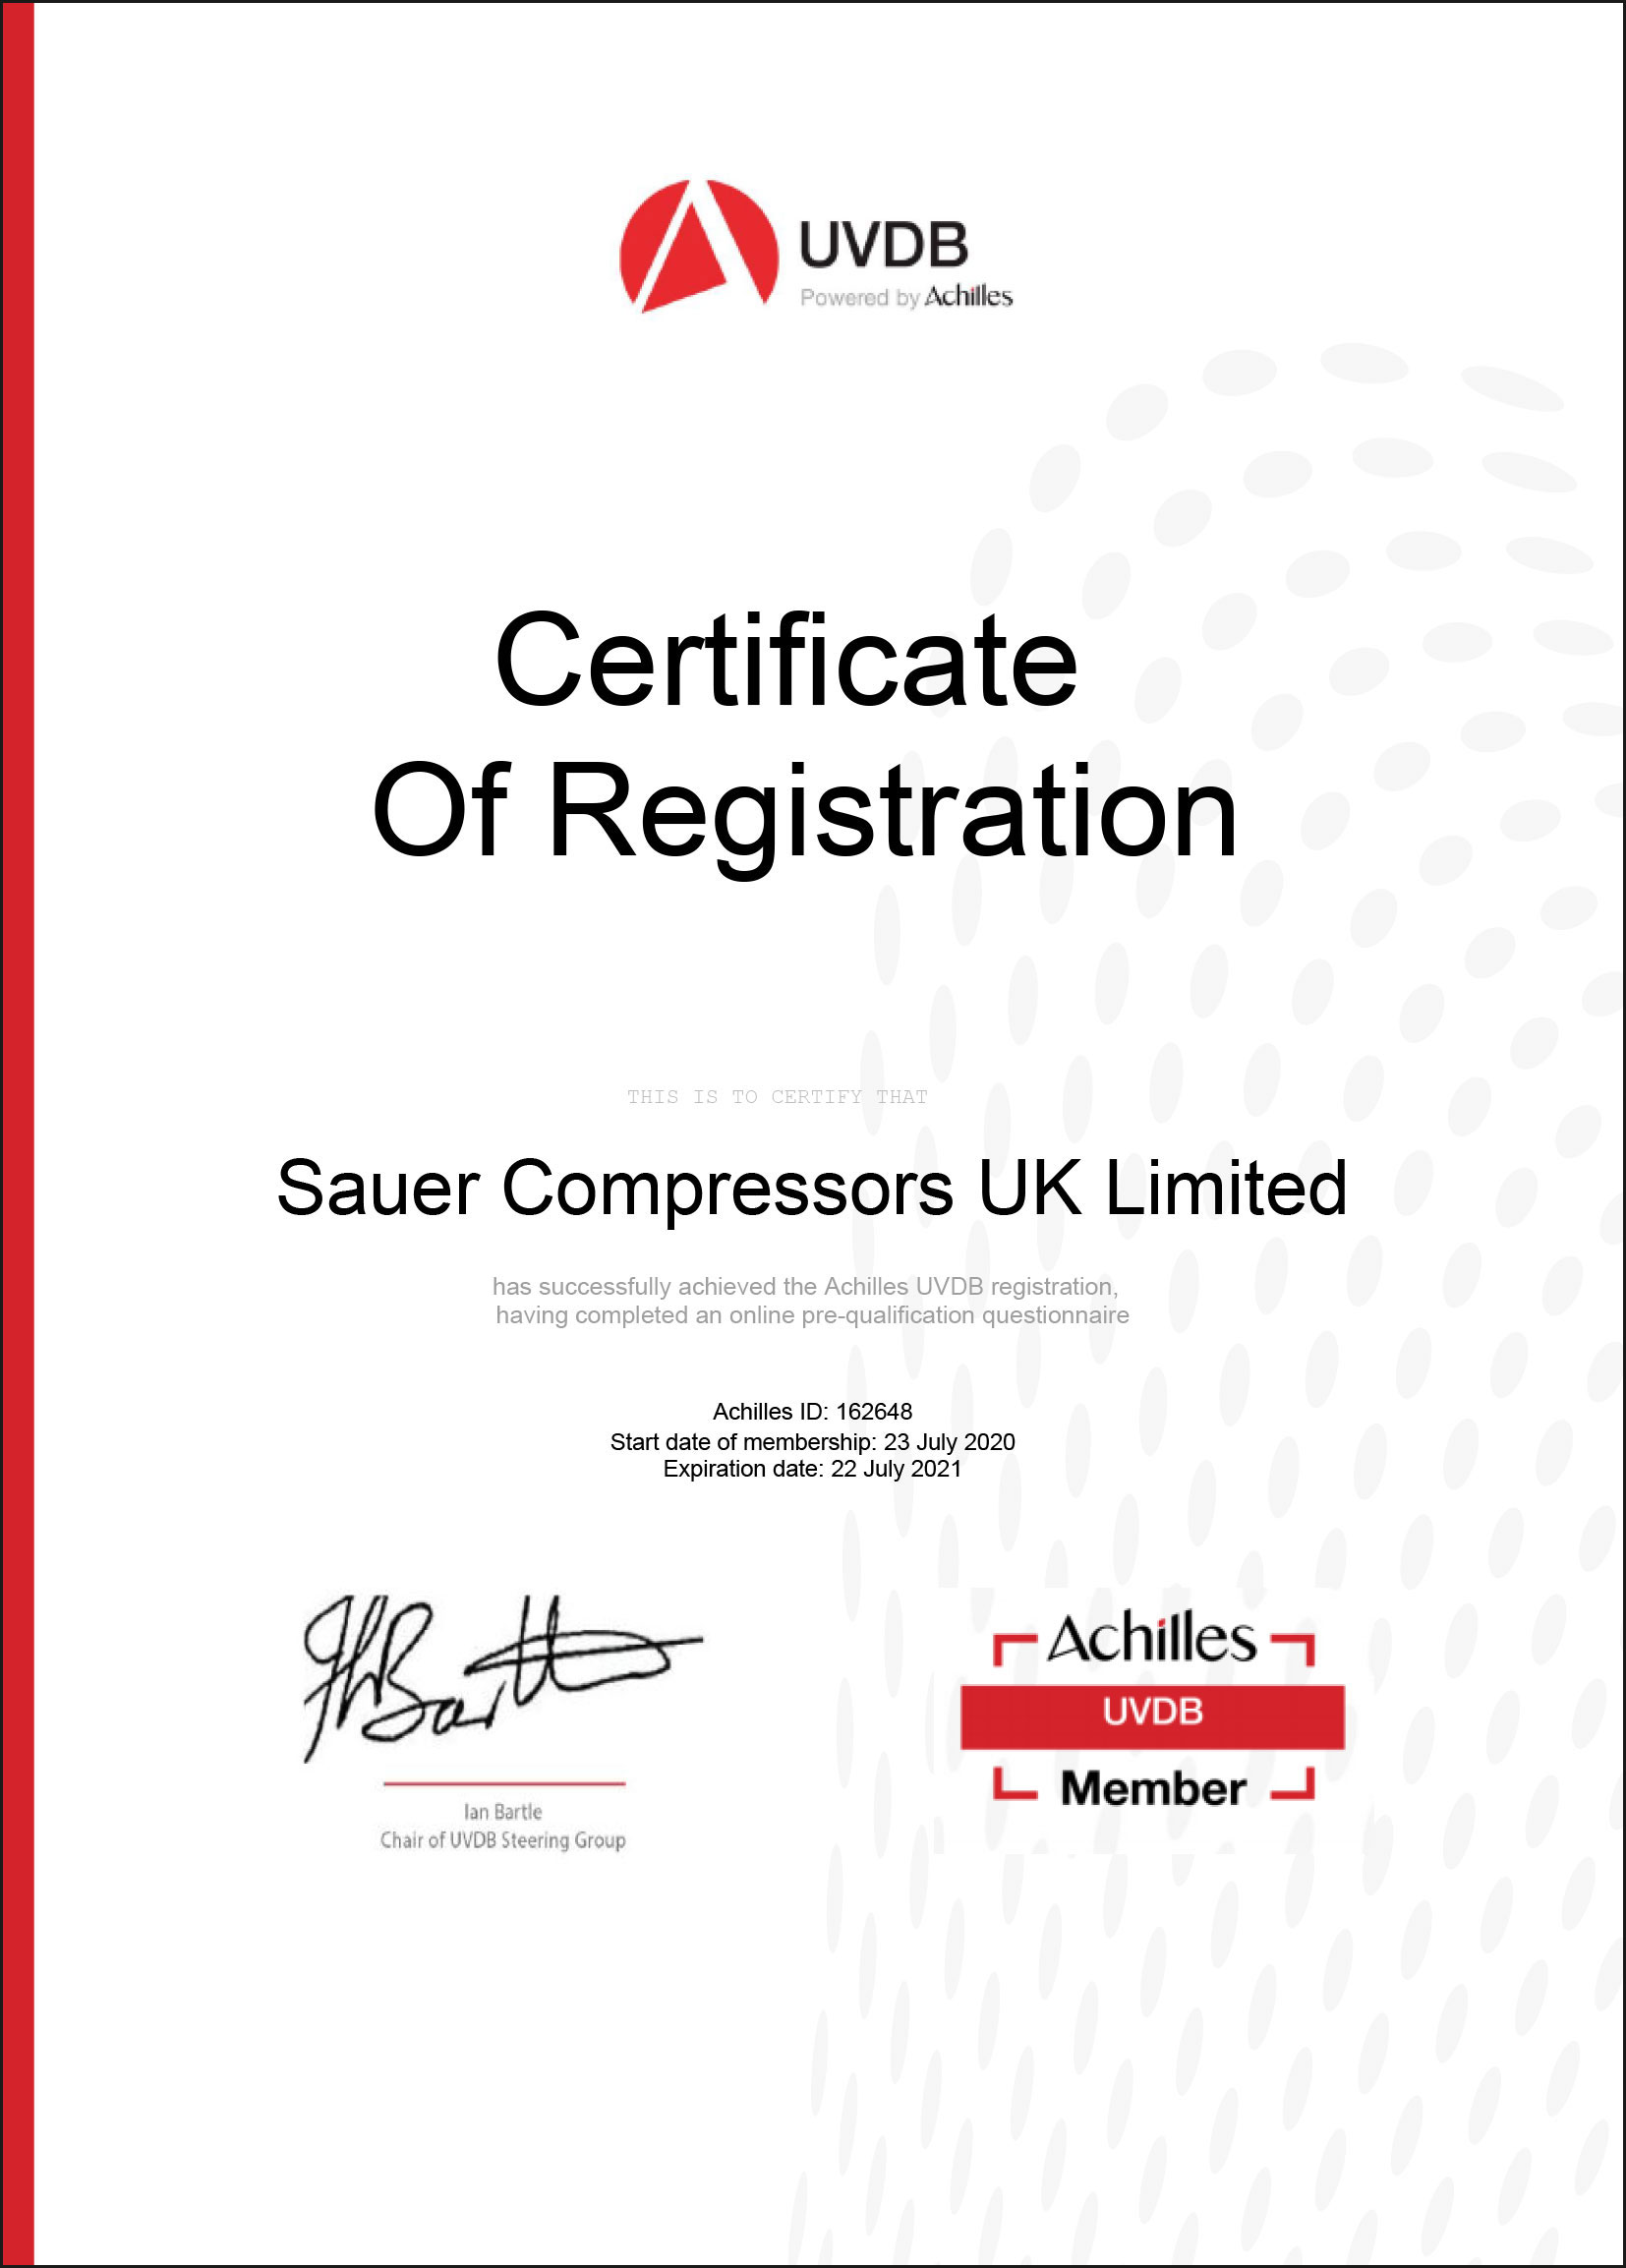 SC UK UVDB AchillesCertificate of Registration exp 23 7 2021